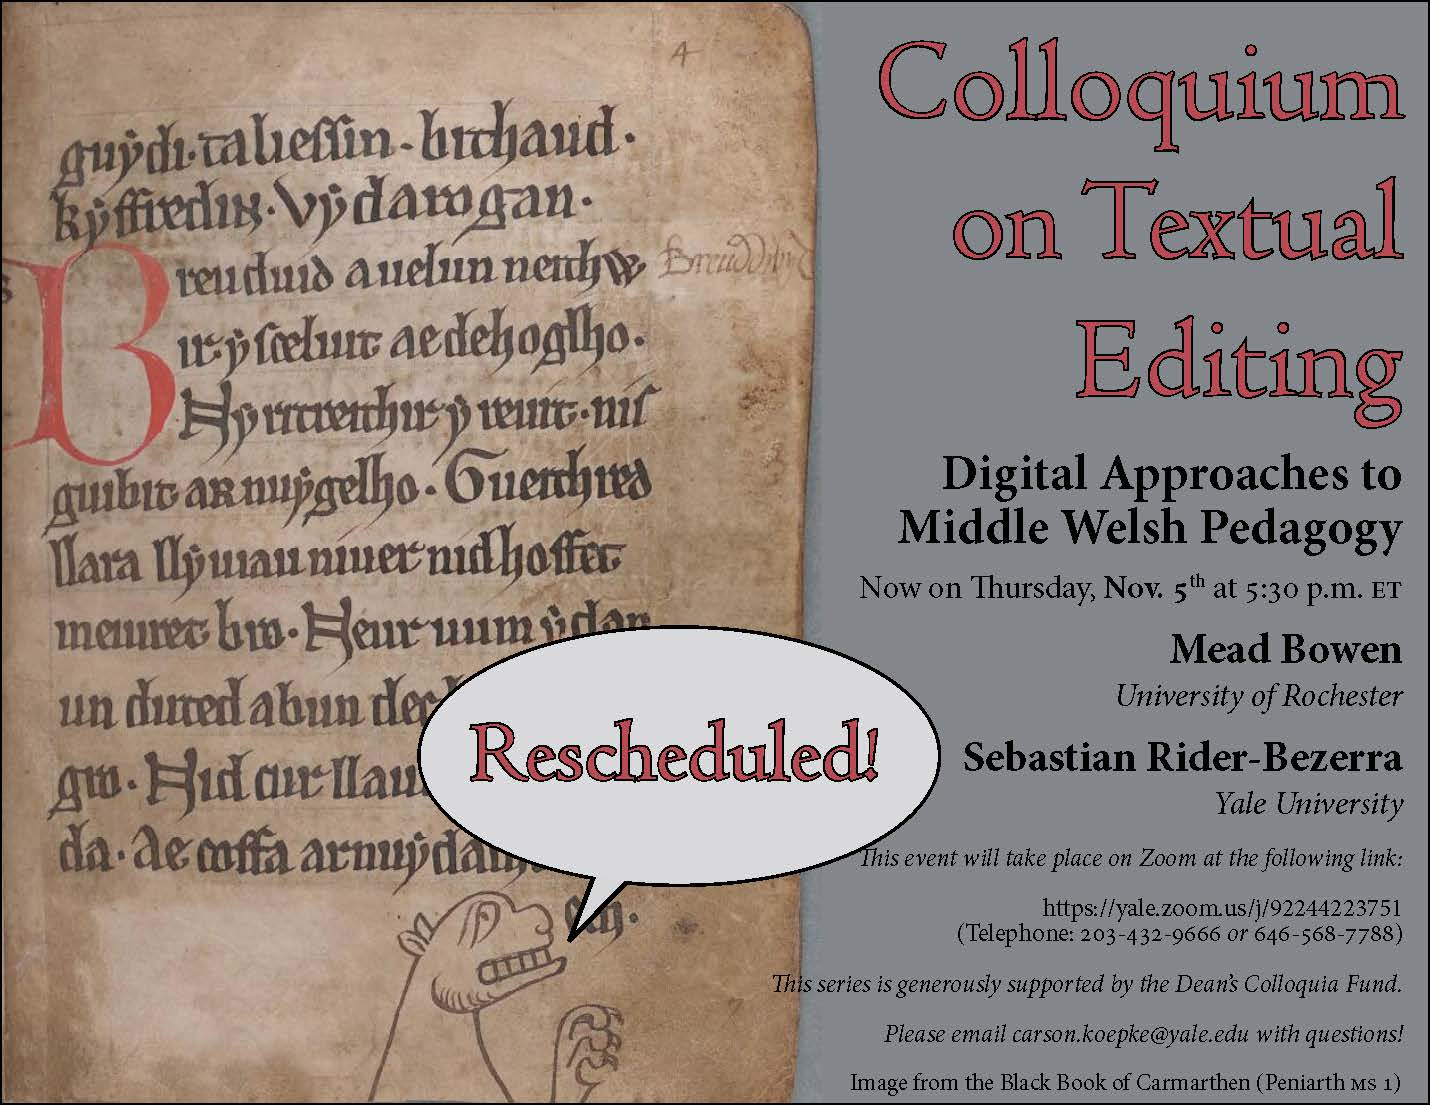 Colloquium on Textual Editing - 5 November flyer